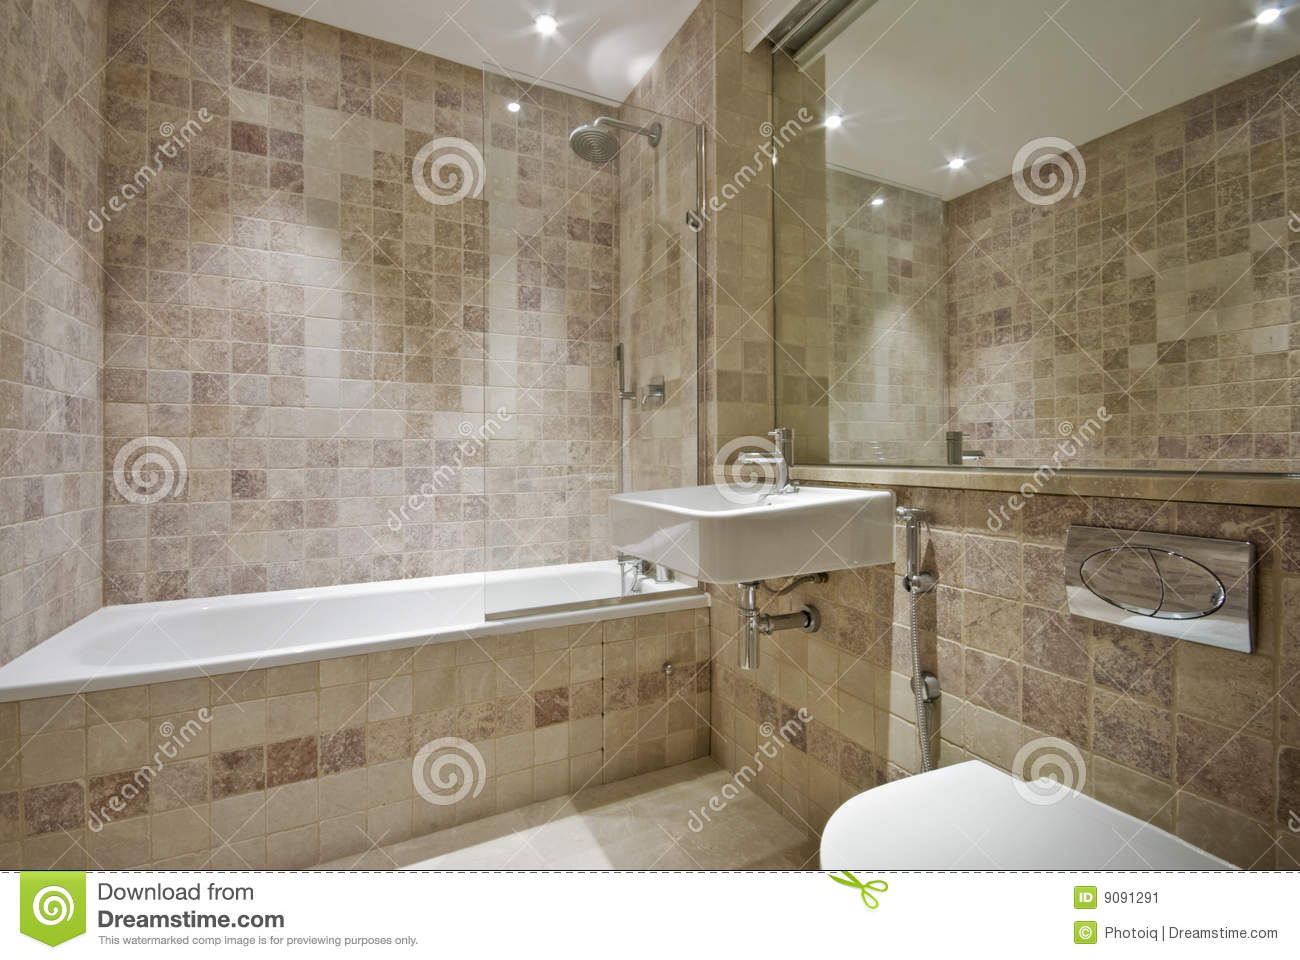 contemporary-bathroom-natural-stone-tiles-9091291